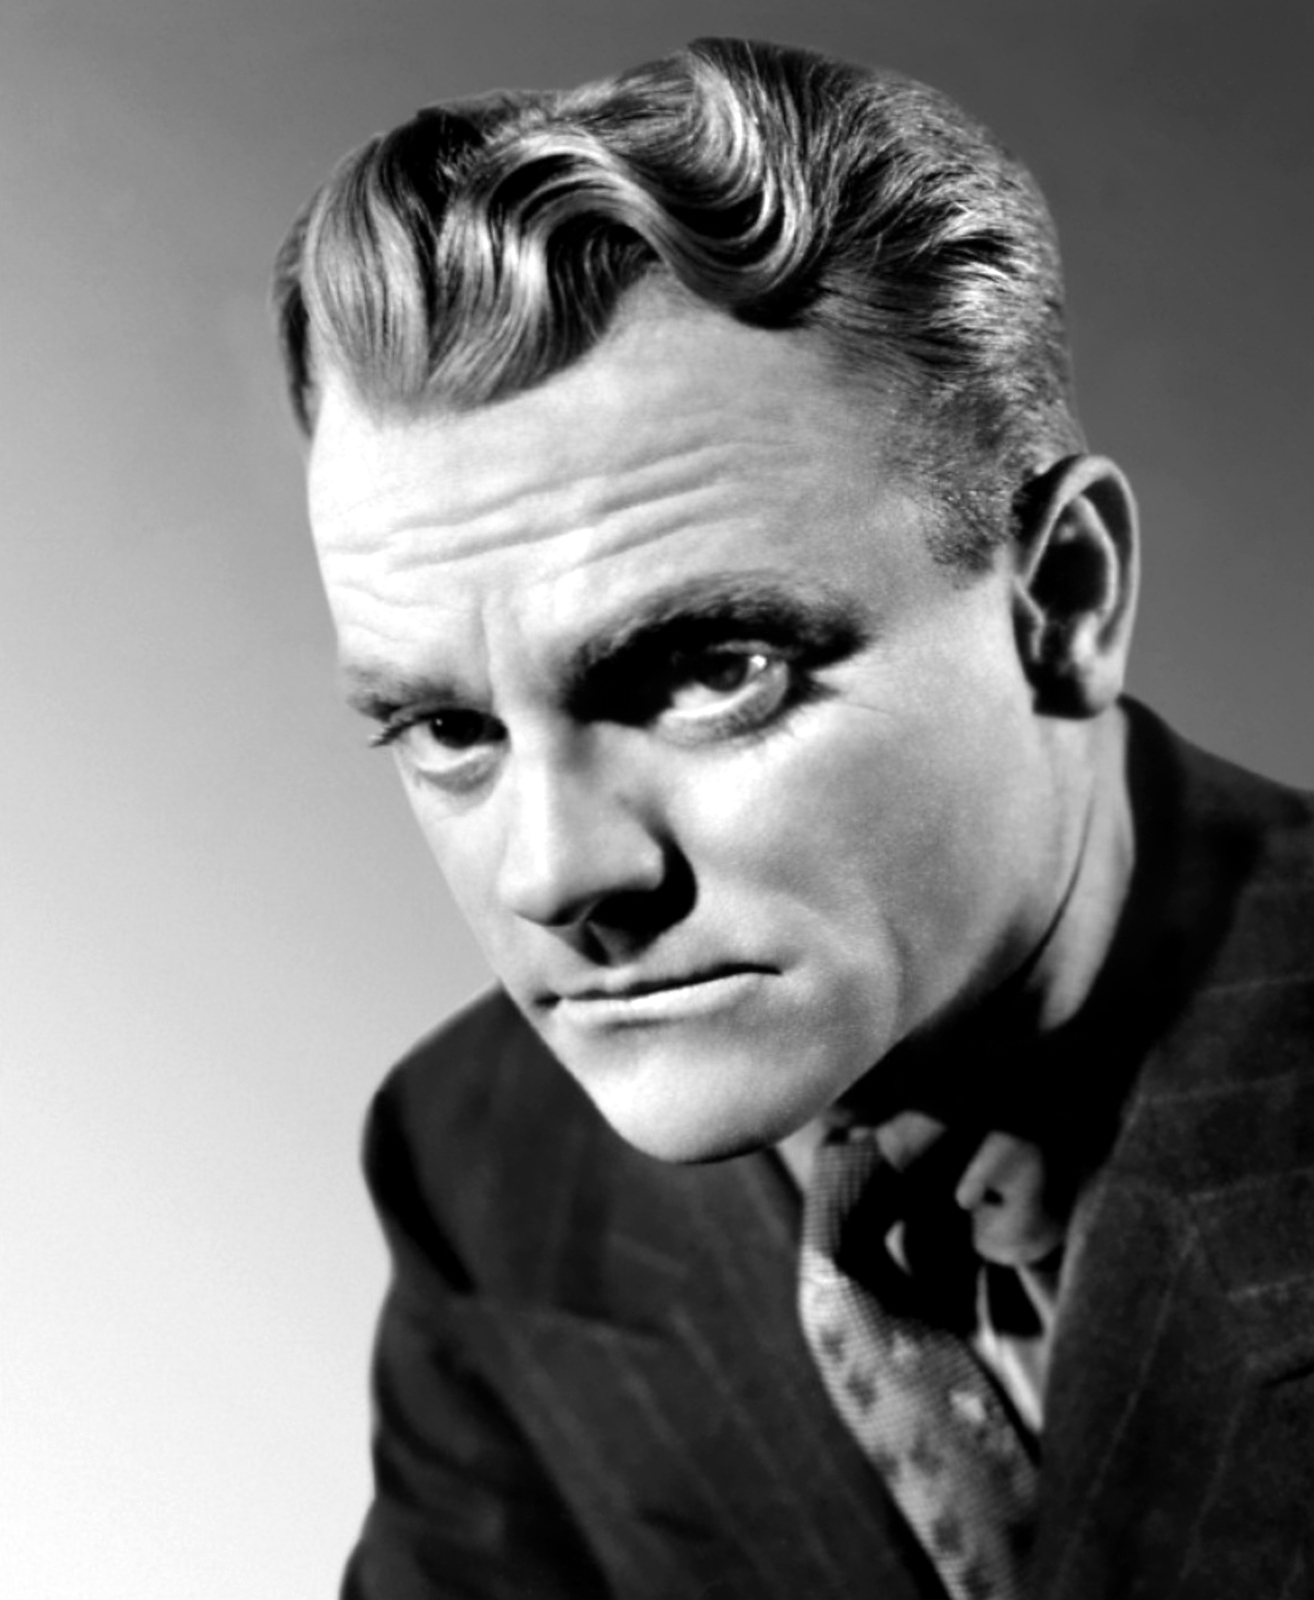 james cagney and bob hopejames cagney rita hayworth, james cagney height, james cagney yankee doodle dandy, james cagney and joan blondell, james cagney and bob hope, james cagney 1935, james cagney jr, james cagney documentary, james cagney filmleri izle, james cagney actor, james cagney movies, james cagney imdb, james cagney you dirty rat, james cagney public enemy, james cagney wikipedia, james cagney top of the world, james cagney interview, james cagney dancing down stairs, james cagney ragtime, james cagney stairs